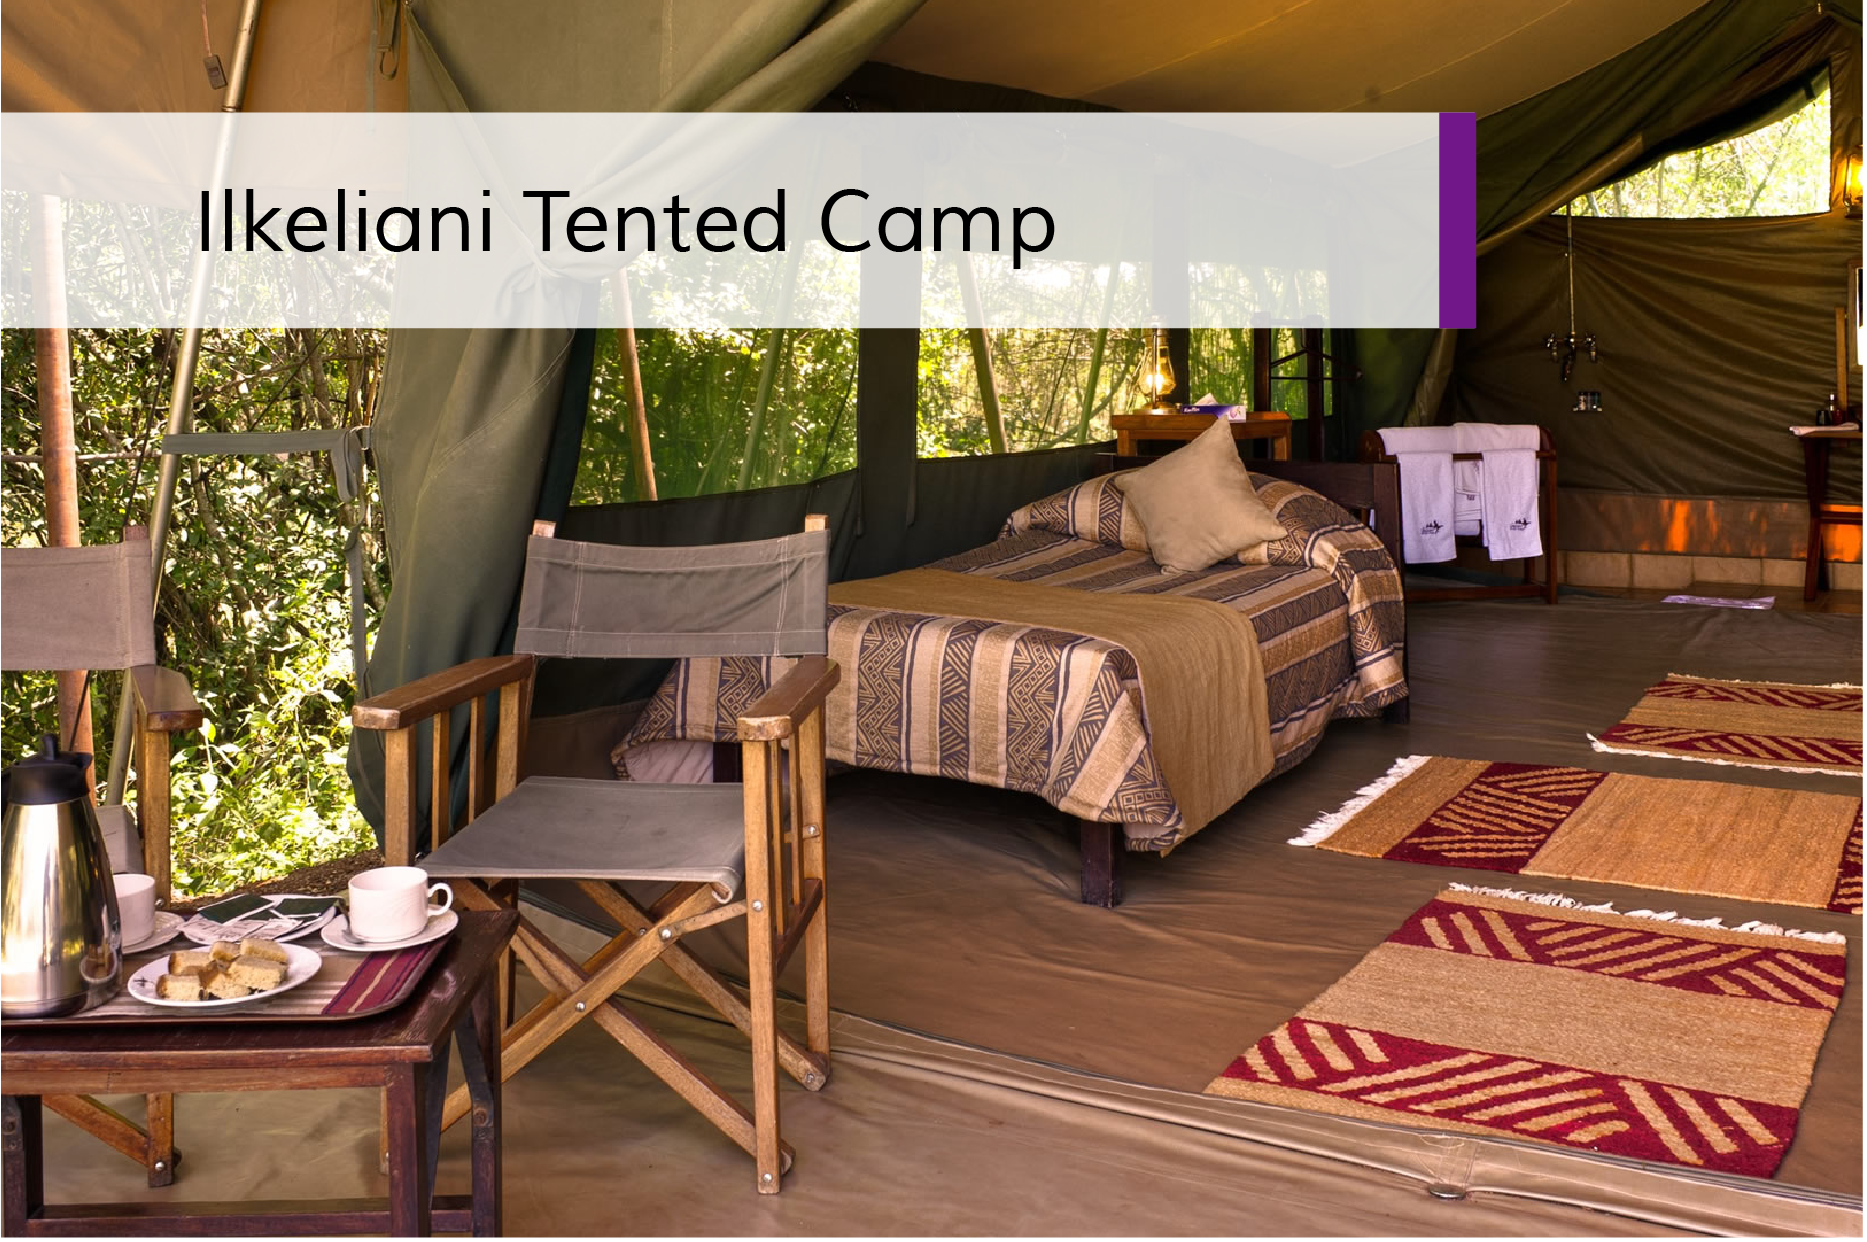 Ilkeliani Tented Camp